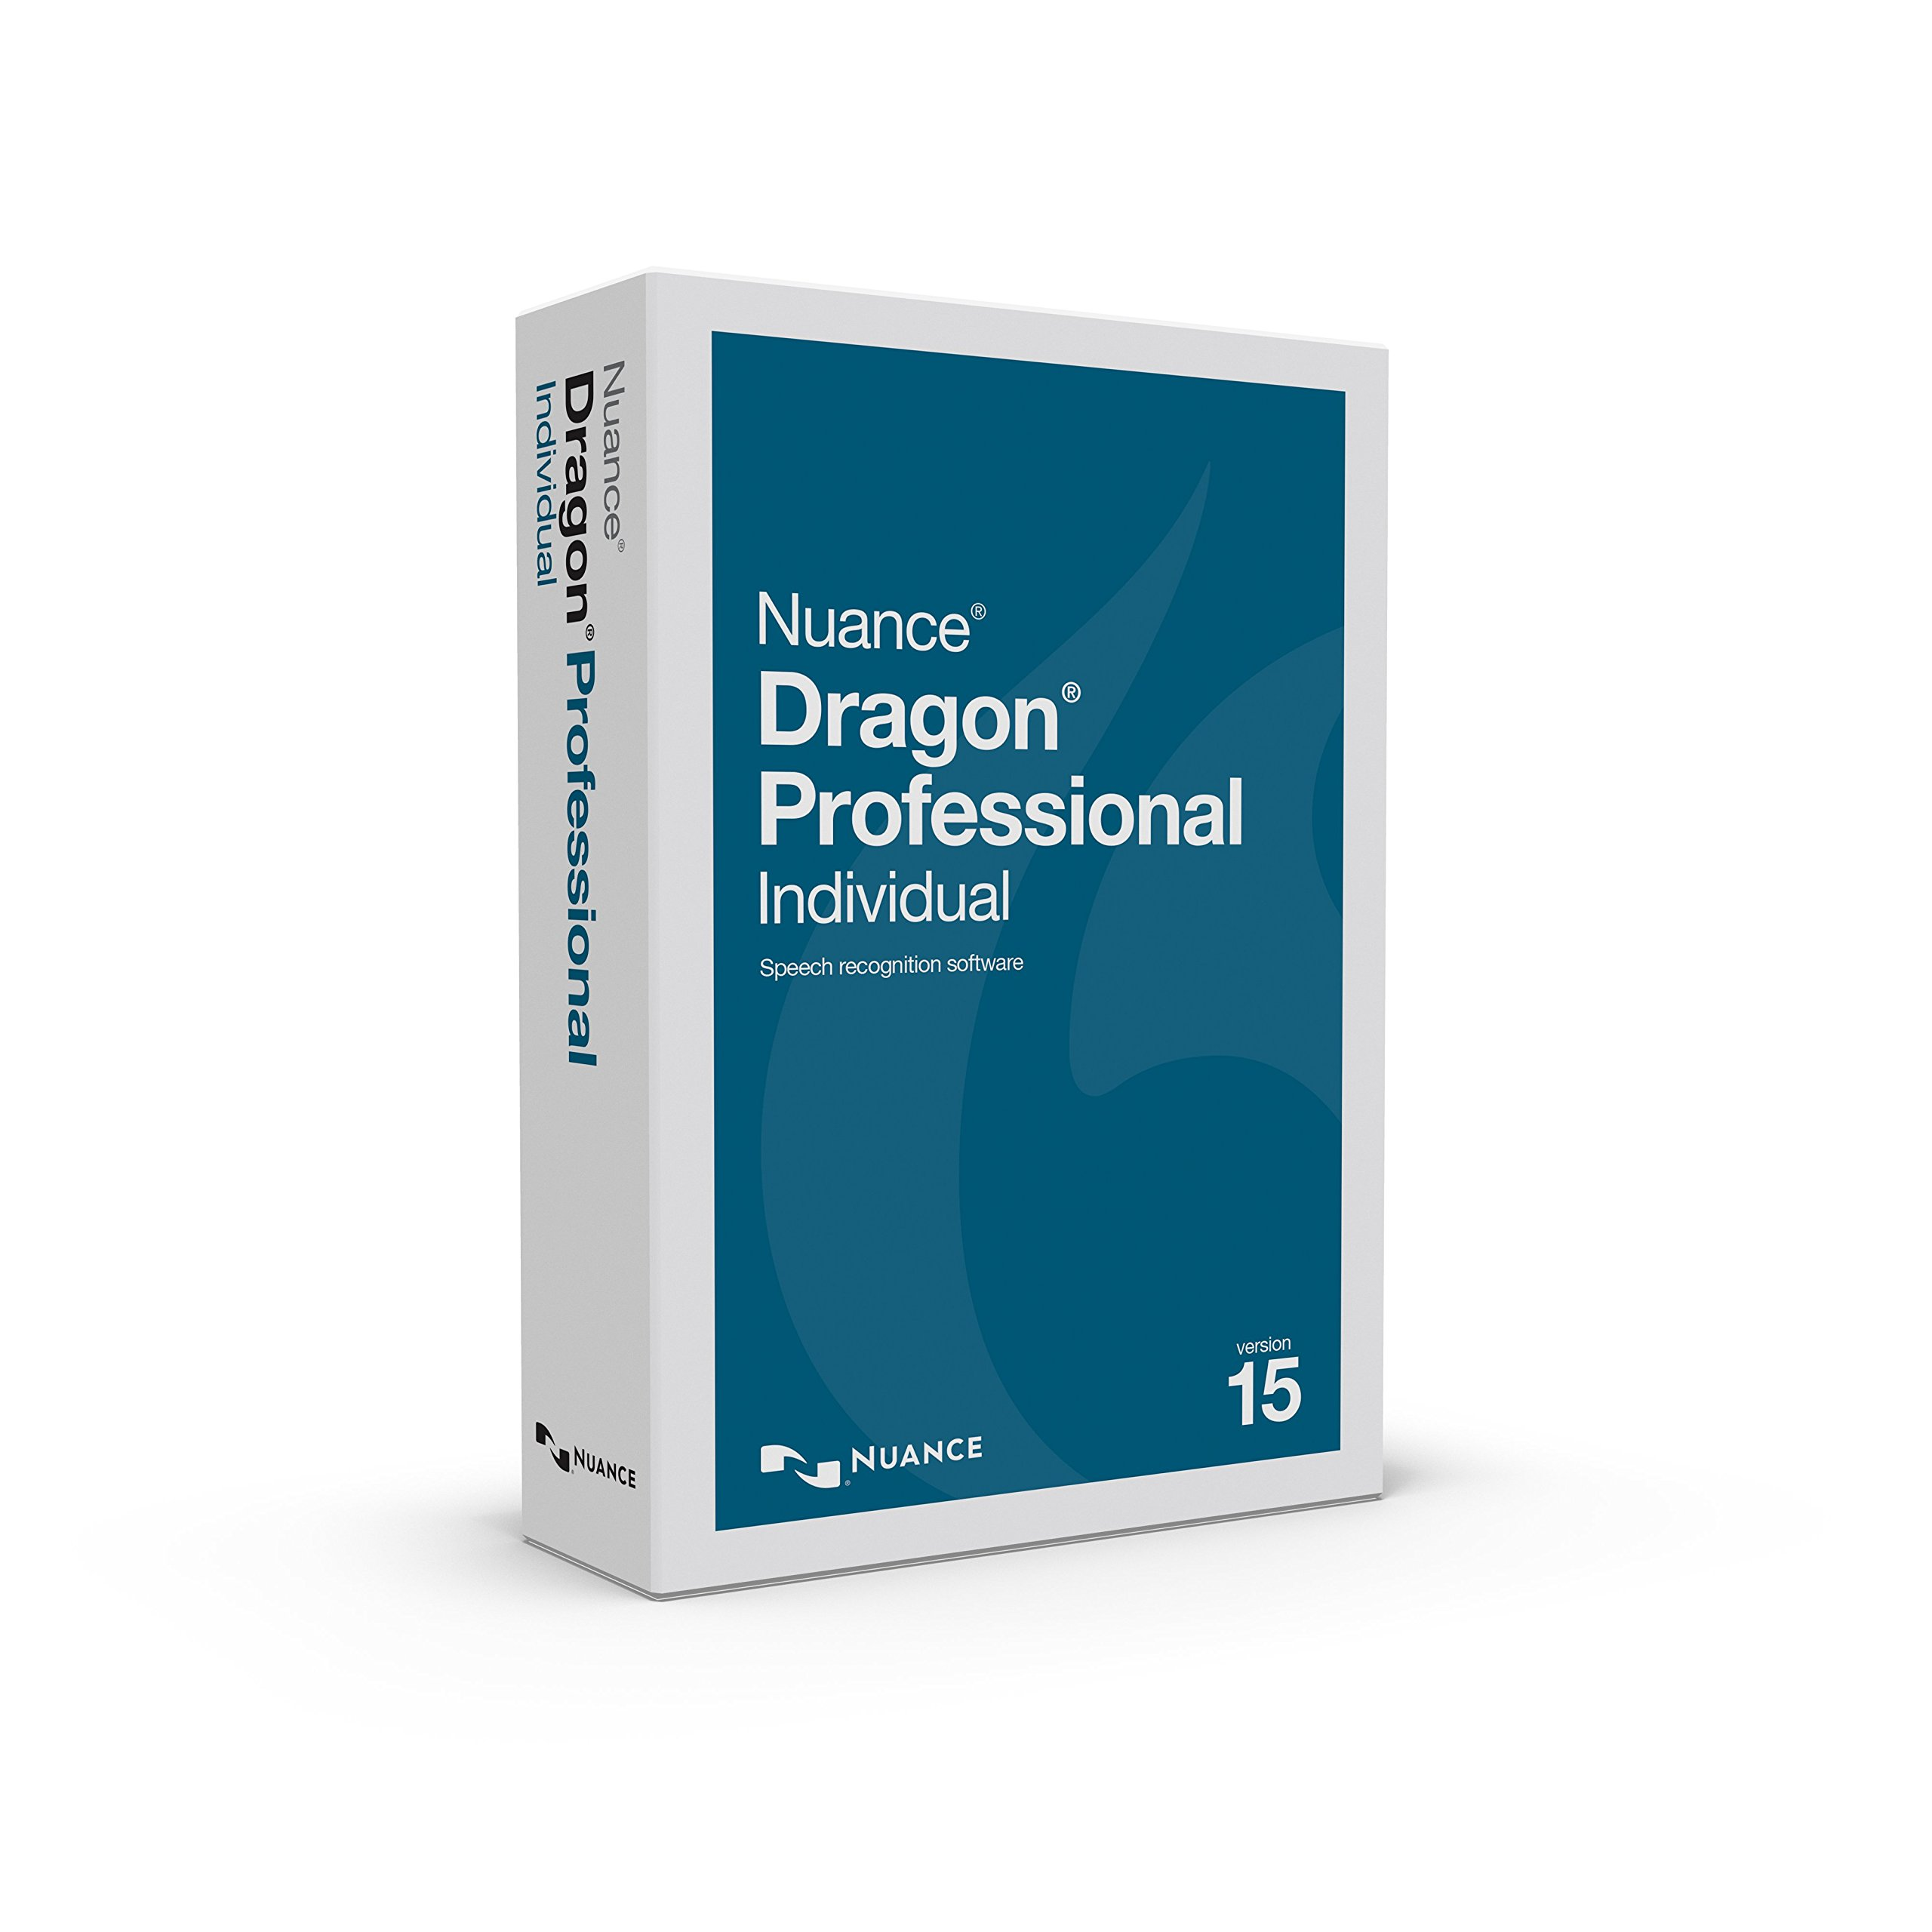 Dragon Professional Individual 15, Upgrade from Dragon Professional 12 or 13 or DPI 14 by Nuance Dragon